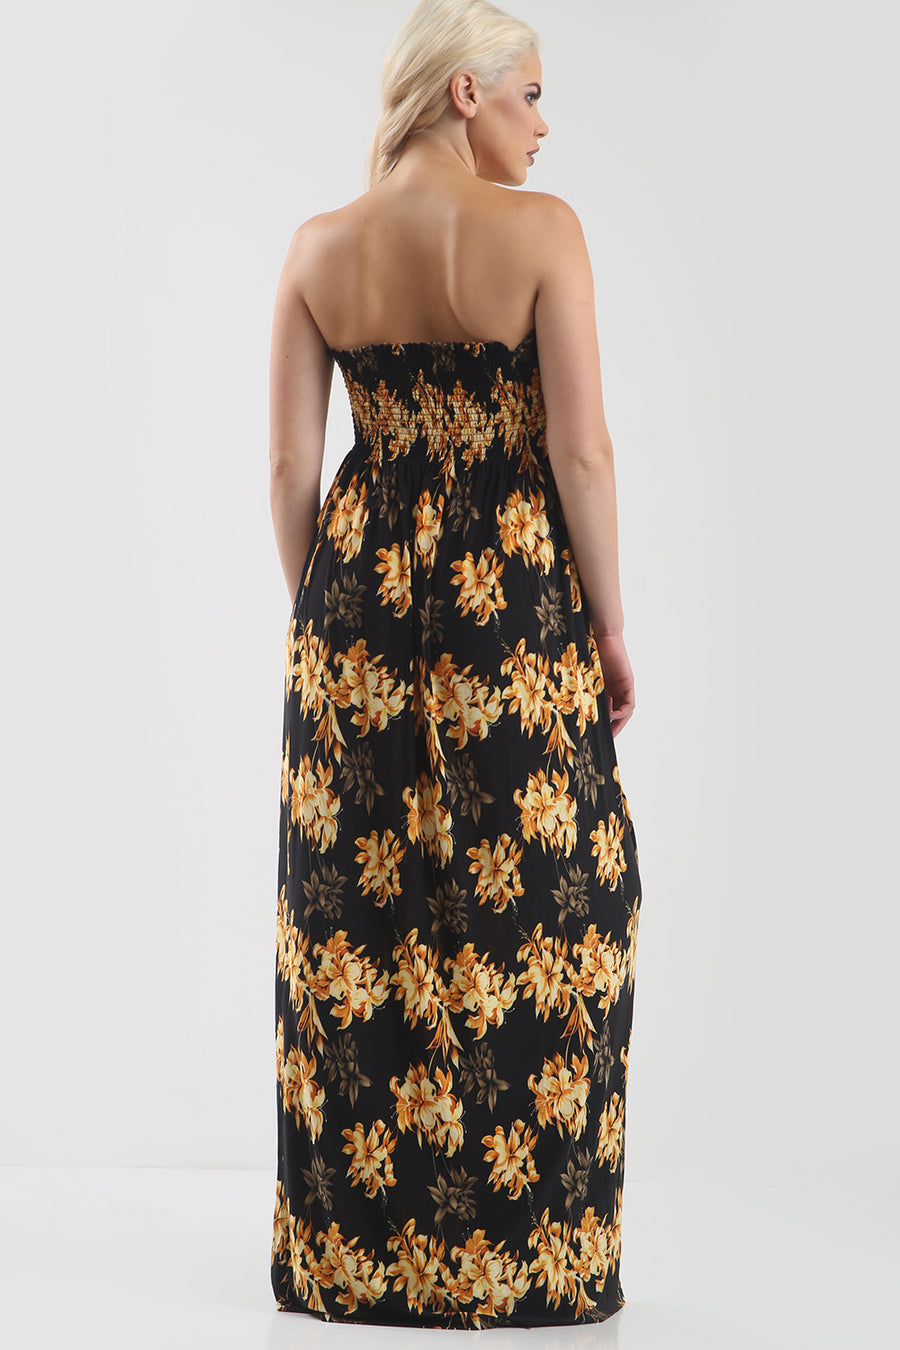 Strapless Maxi Dress in Gold Tropical Print - bejealous-com